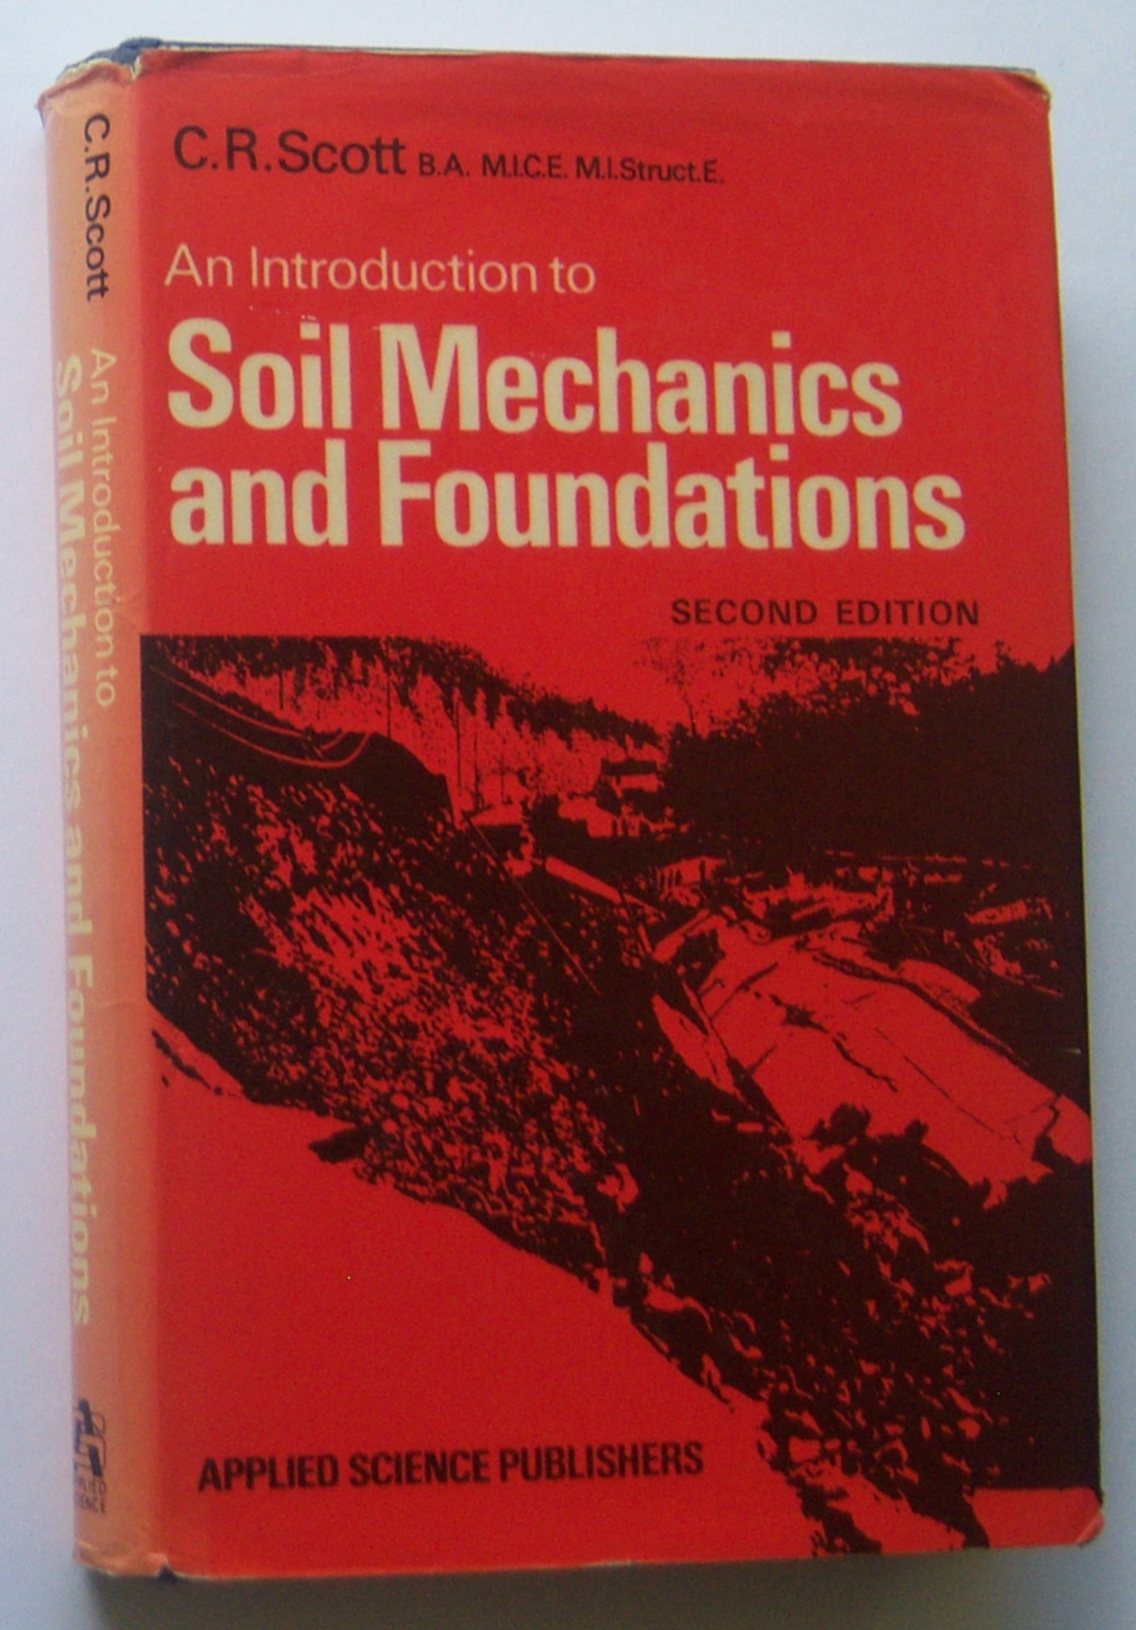 Image for AN INTRODUCTION TO SOIL MECHANICS AND FOUNDATIONS (Second Edition)